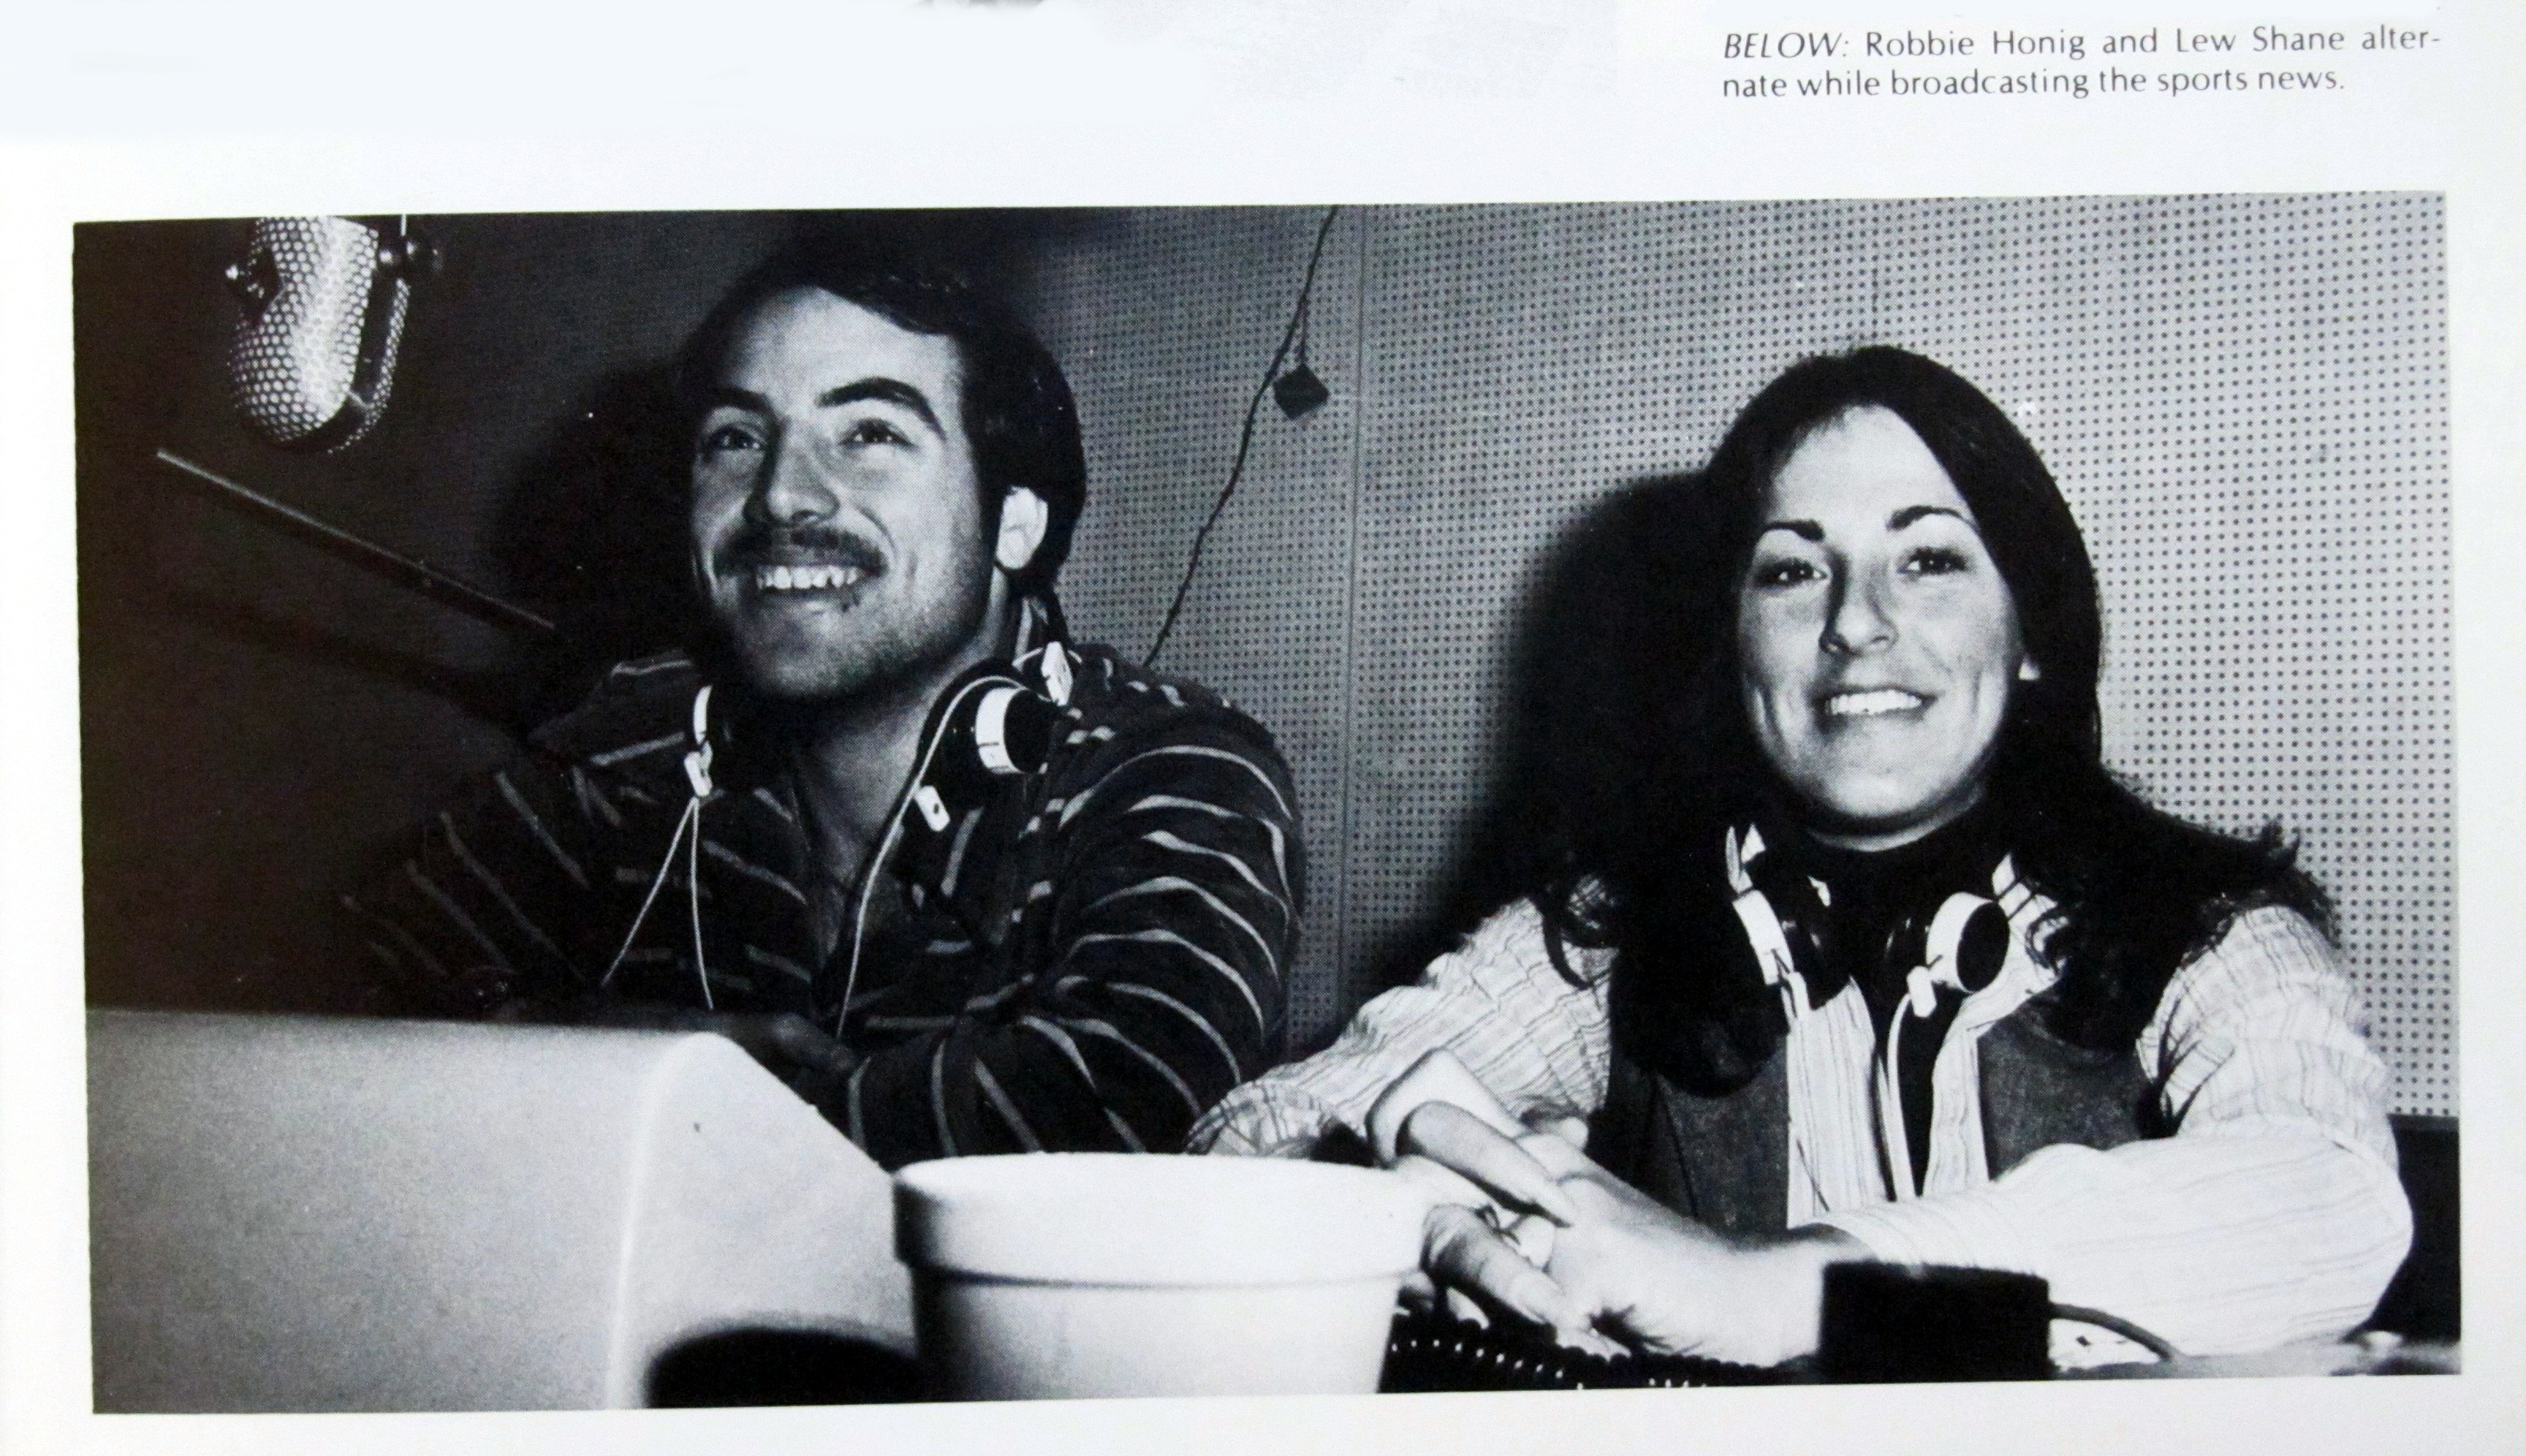 1979 - Lew Shane and Robbie Honig in Studio A doing the News